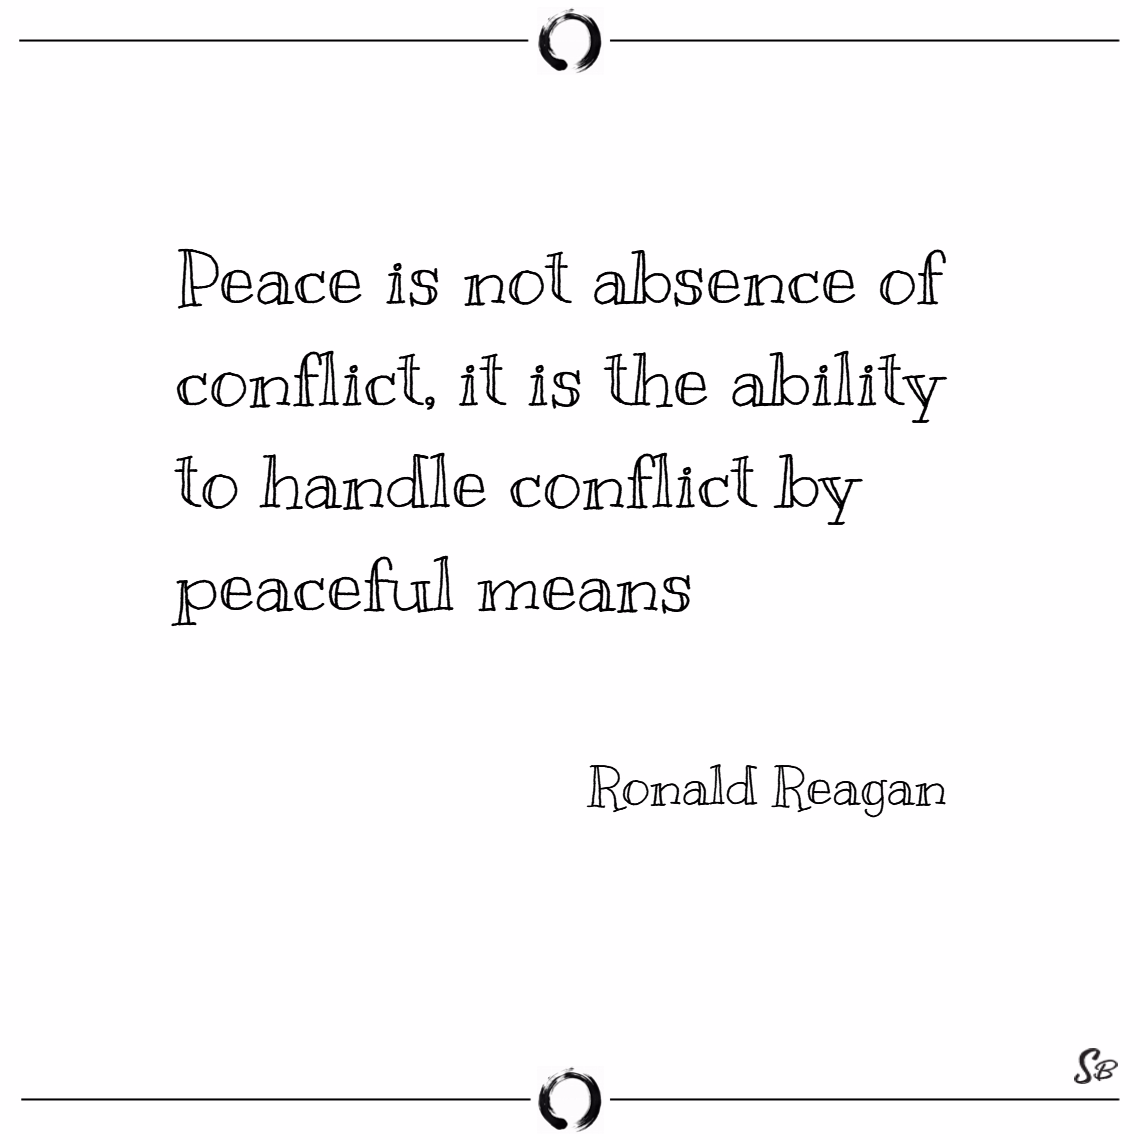 Peace is not absence of conflict, it is the abilit